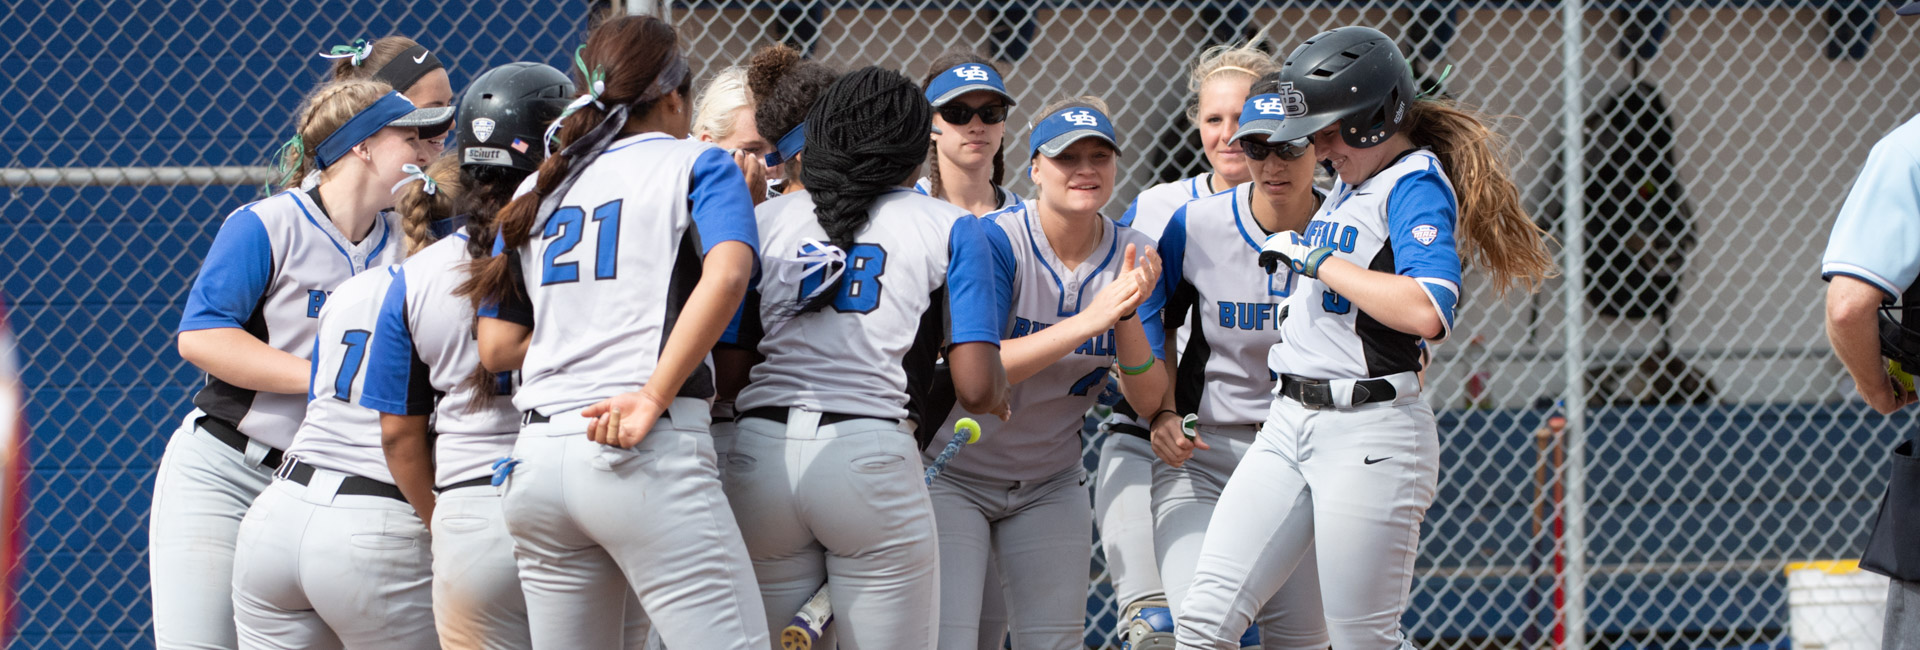 UB Softball